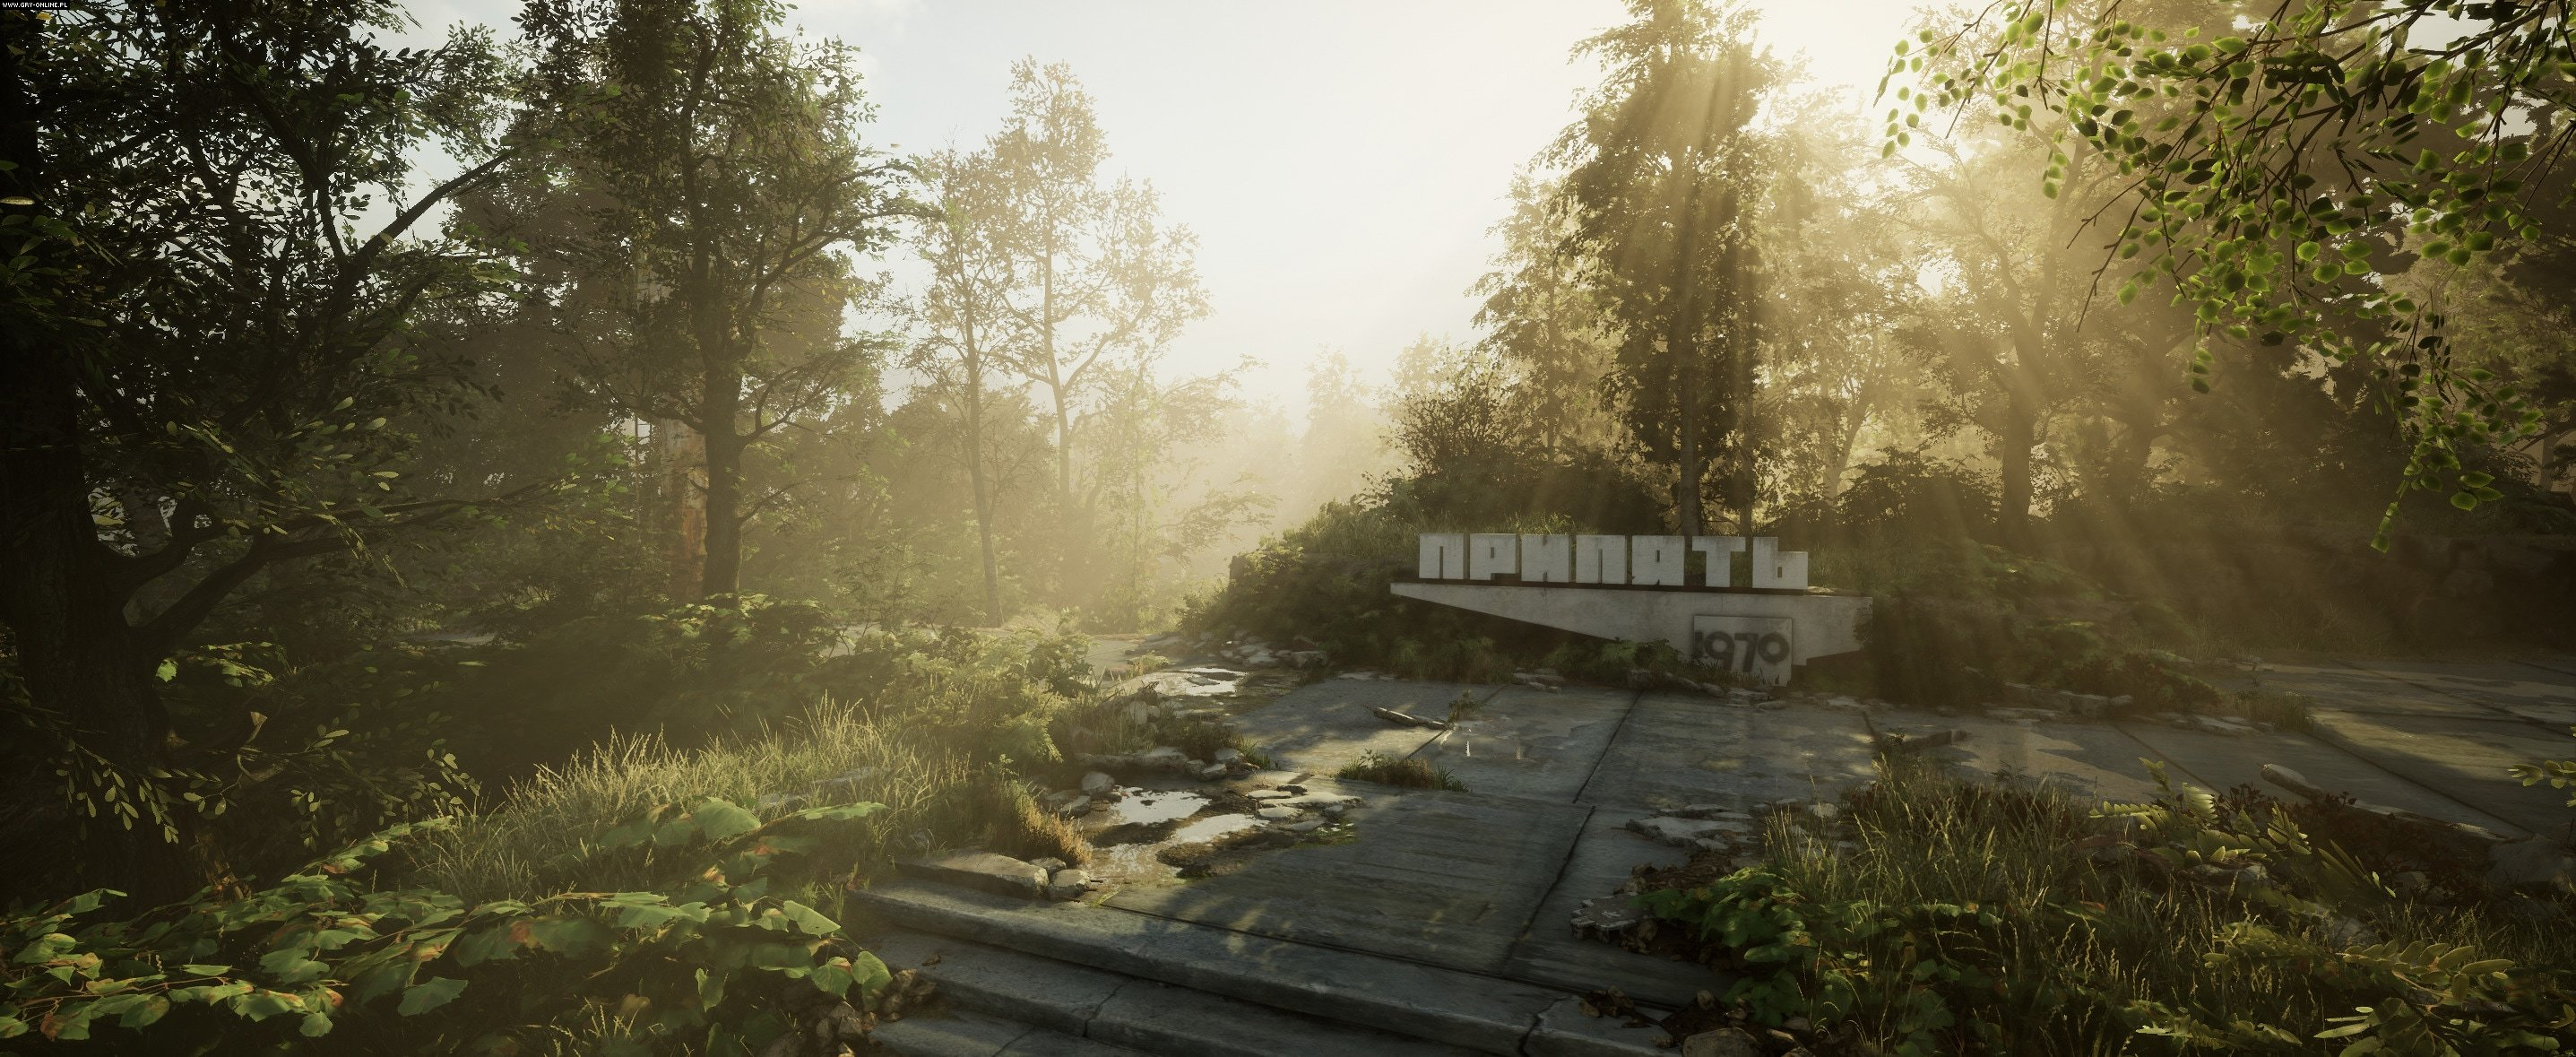 Chernobylite PC, PS4, XONE Games Image 2/21, The Farm 51